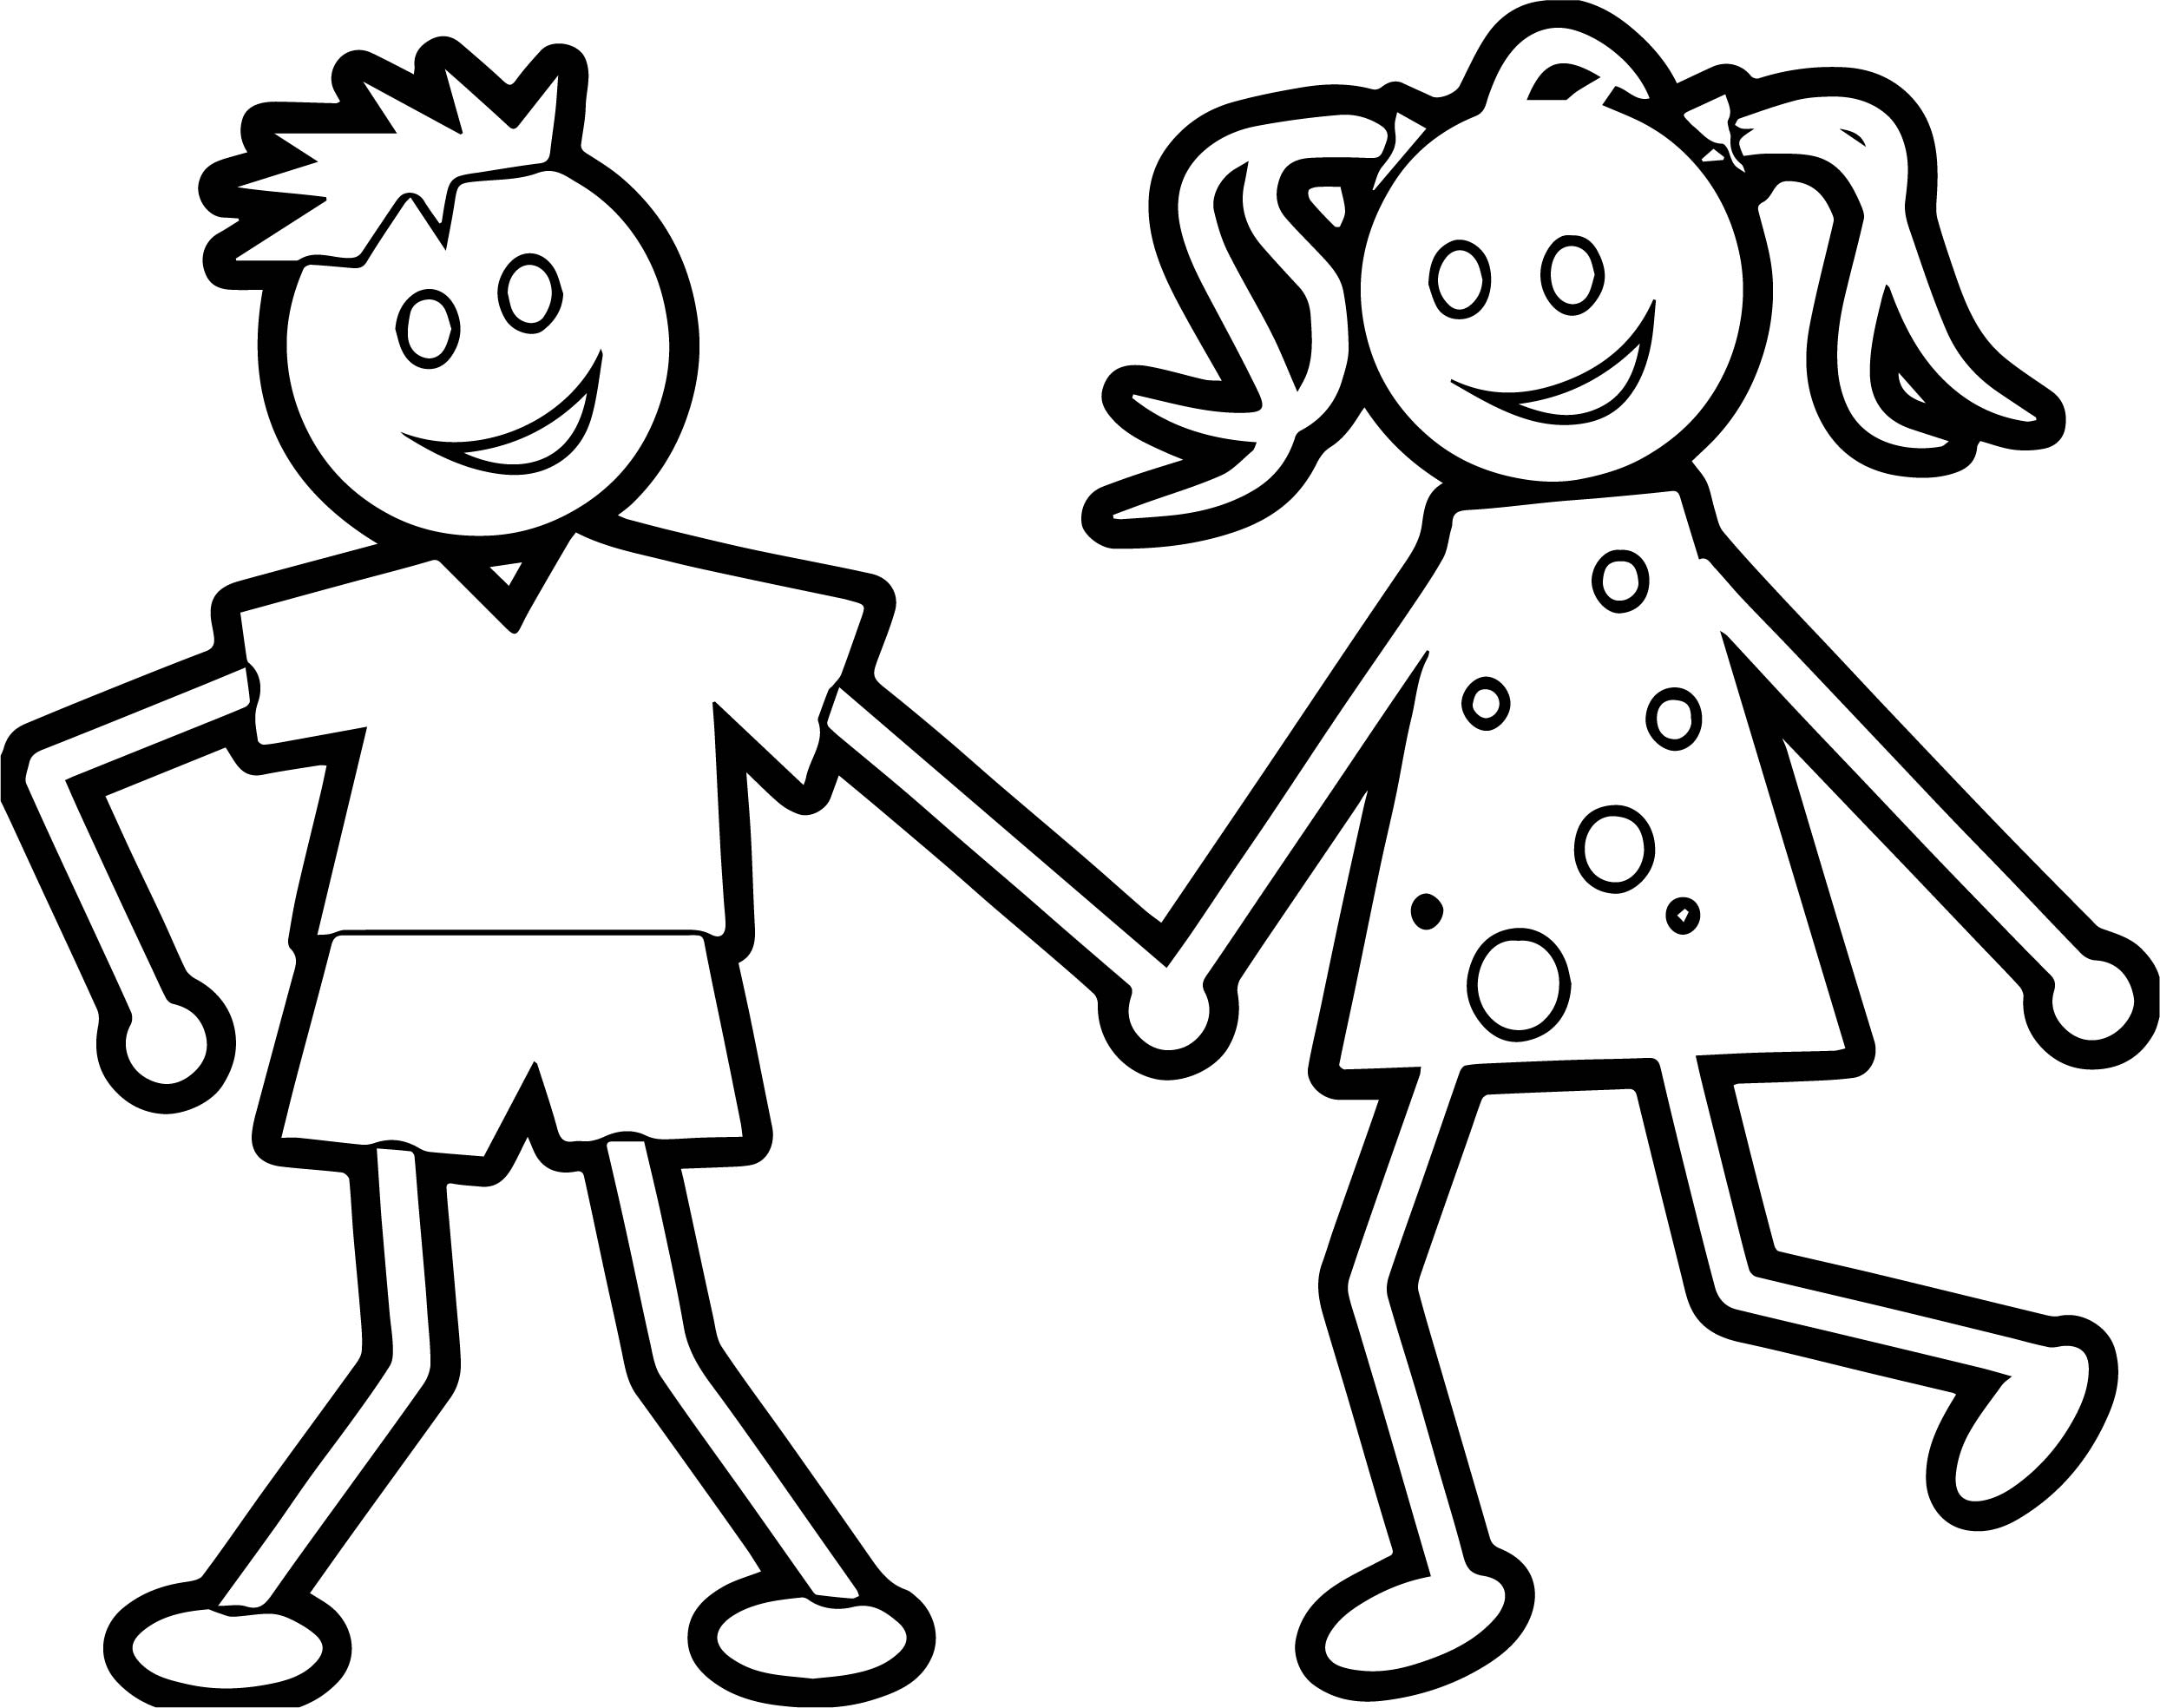 coloring pages boys and girls girl and boy with ball coloring page stock illustration pages coloring boys girls and